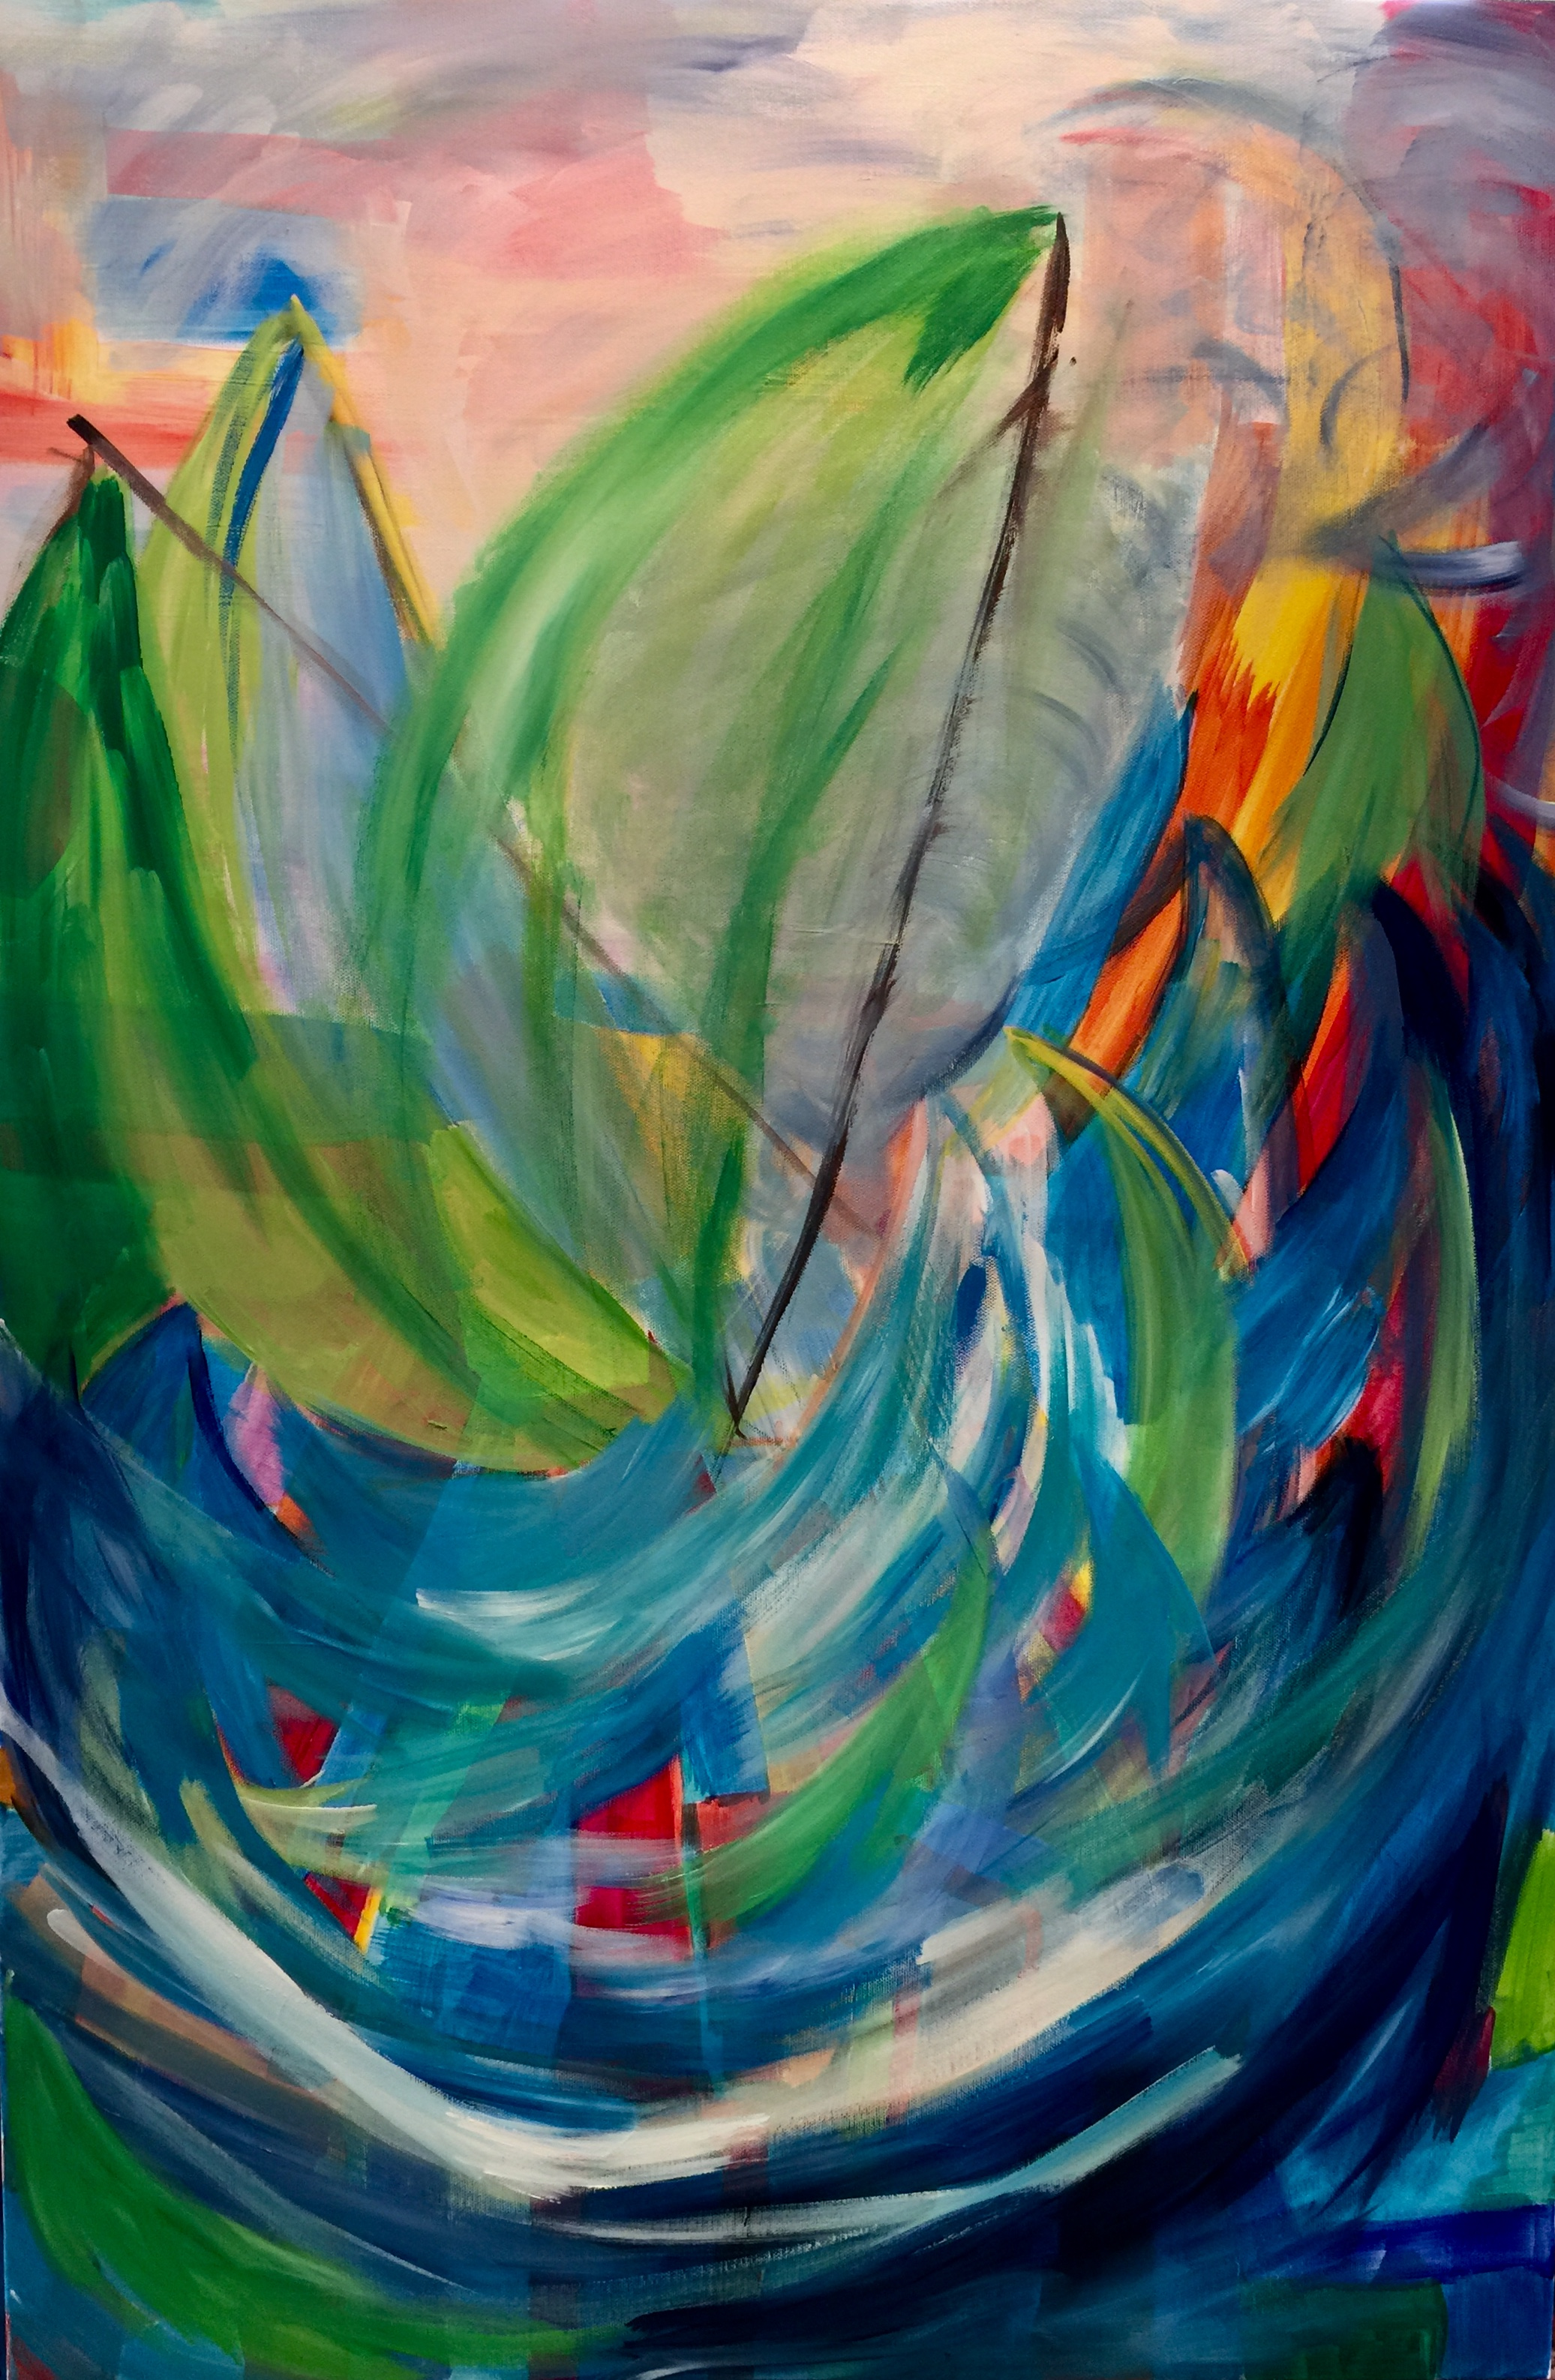 Kandinsky style painting by Maria-Victoria Checa of seascape